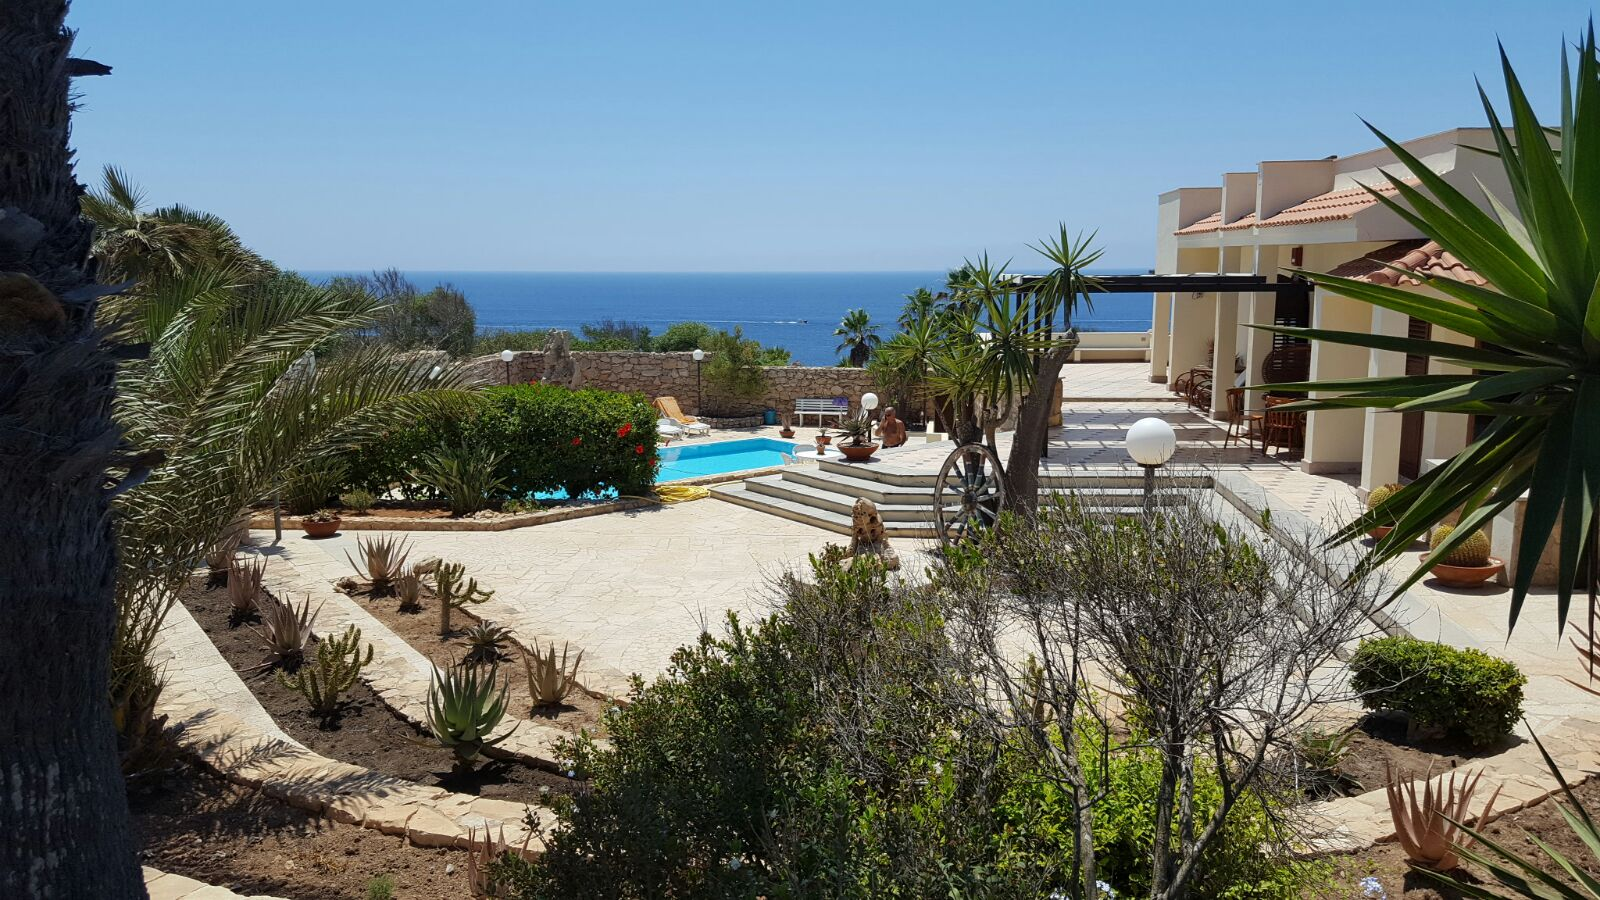 Majestic Seafront Villa on the island of Lampedusa with Pool, Sicily